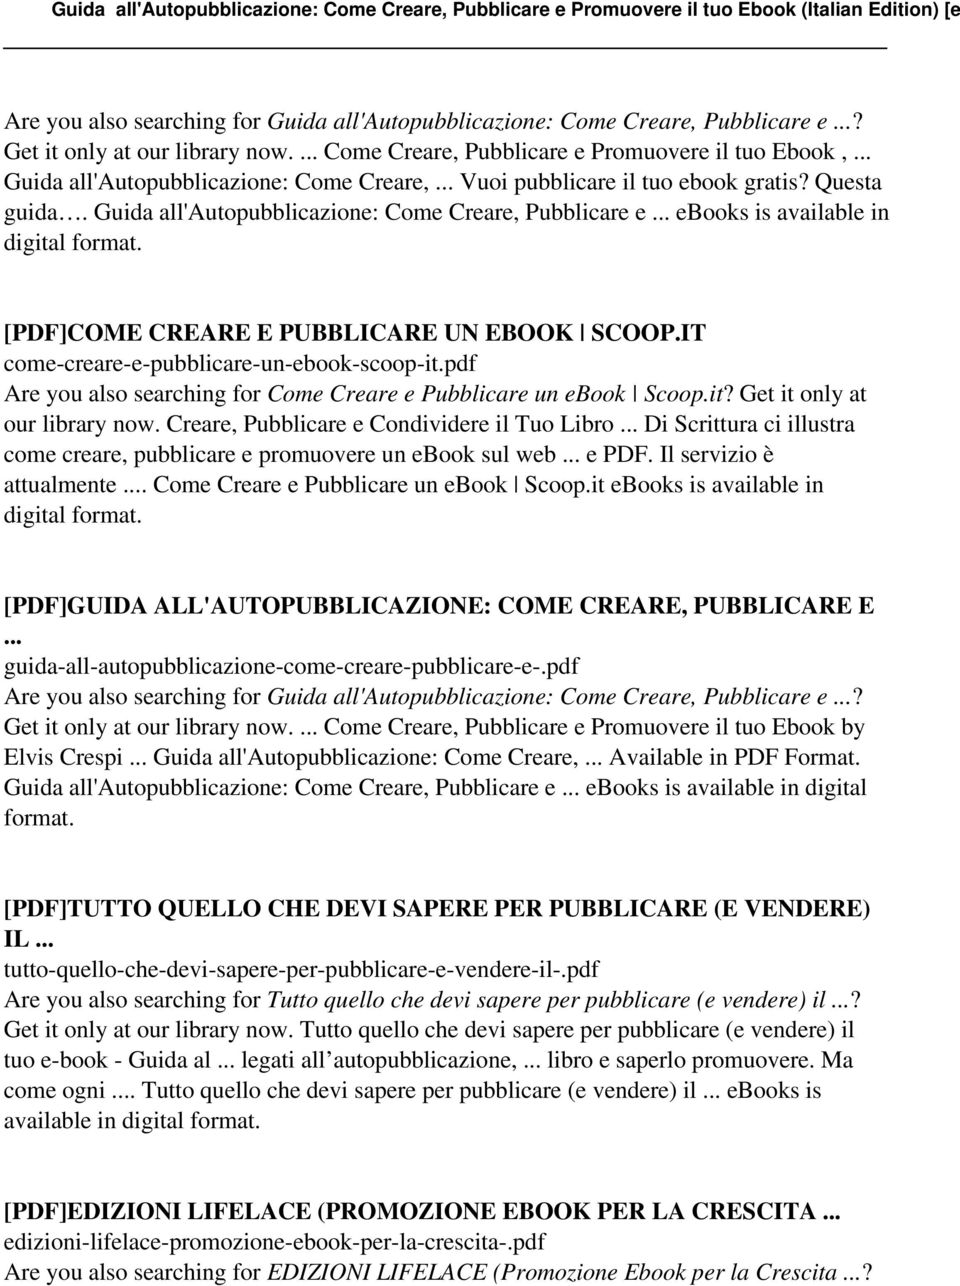 Guida all'autopubblicazione: Come Creare, Pubblicare e ebooks is available in digital format. [PDF]COME CREARE E PUBBLICARE UN EBOOK SCOOP.IT come-creare-e-pubblicare-un-ebook-scoop-it.